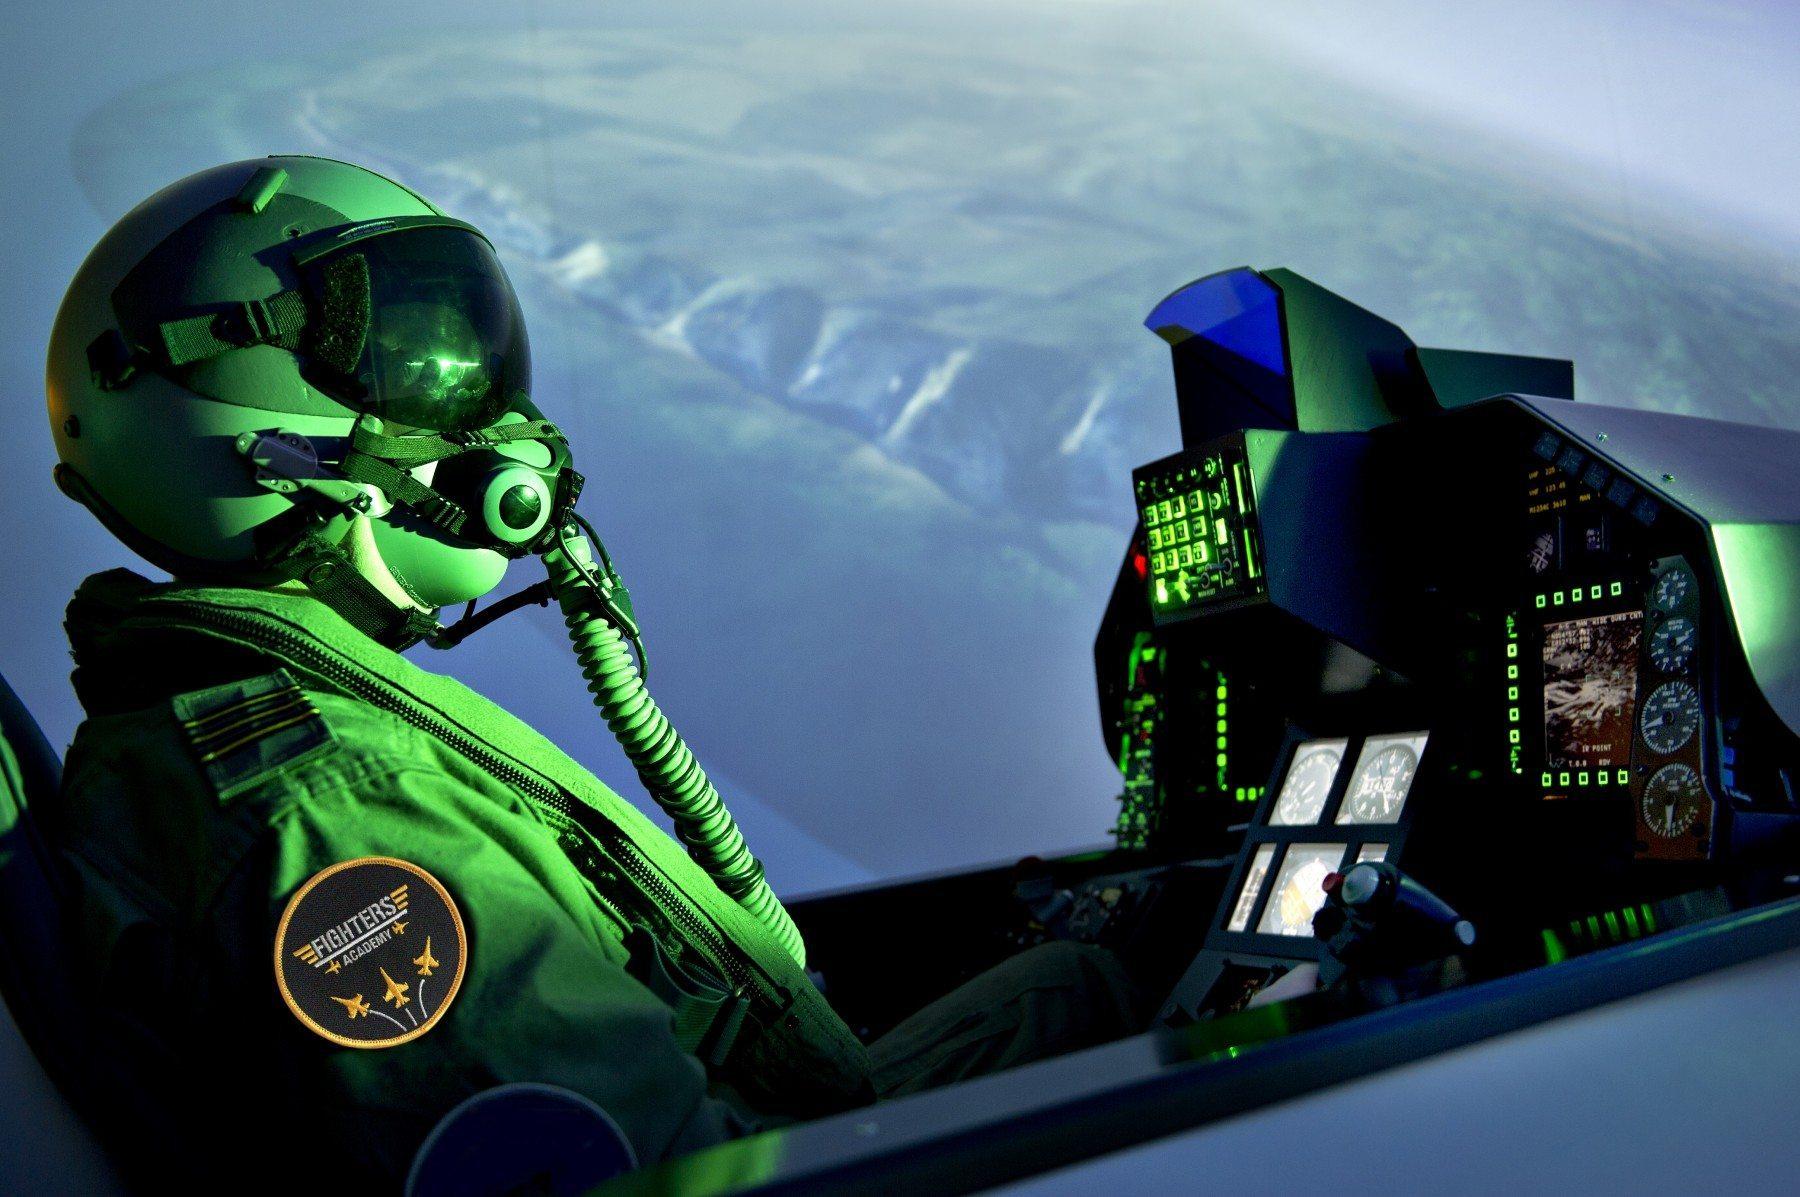 Simulateur d'avion de chasse – Pack Top Gun 6 per. à Bordeaux